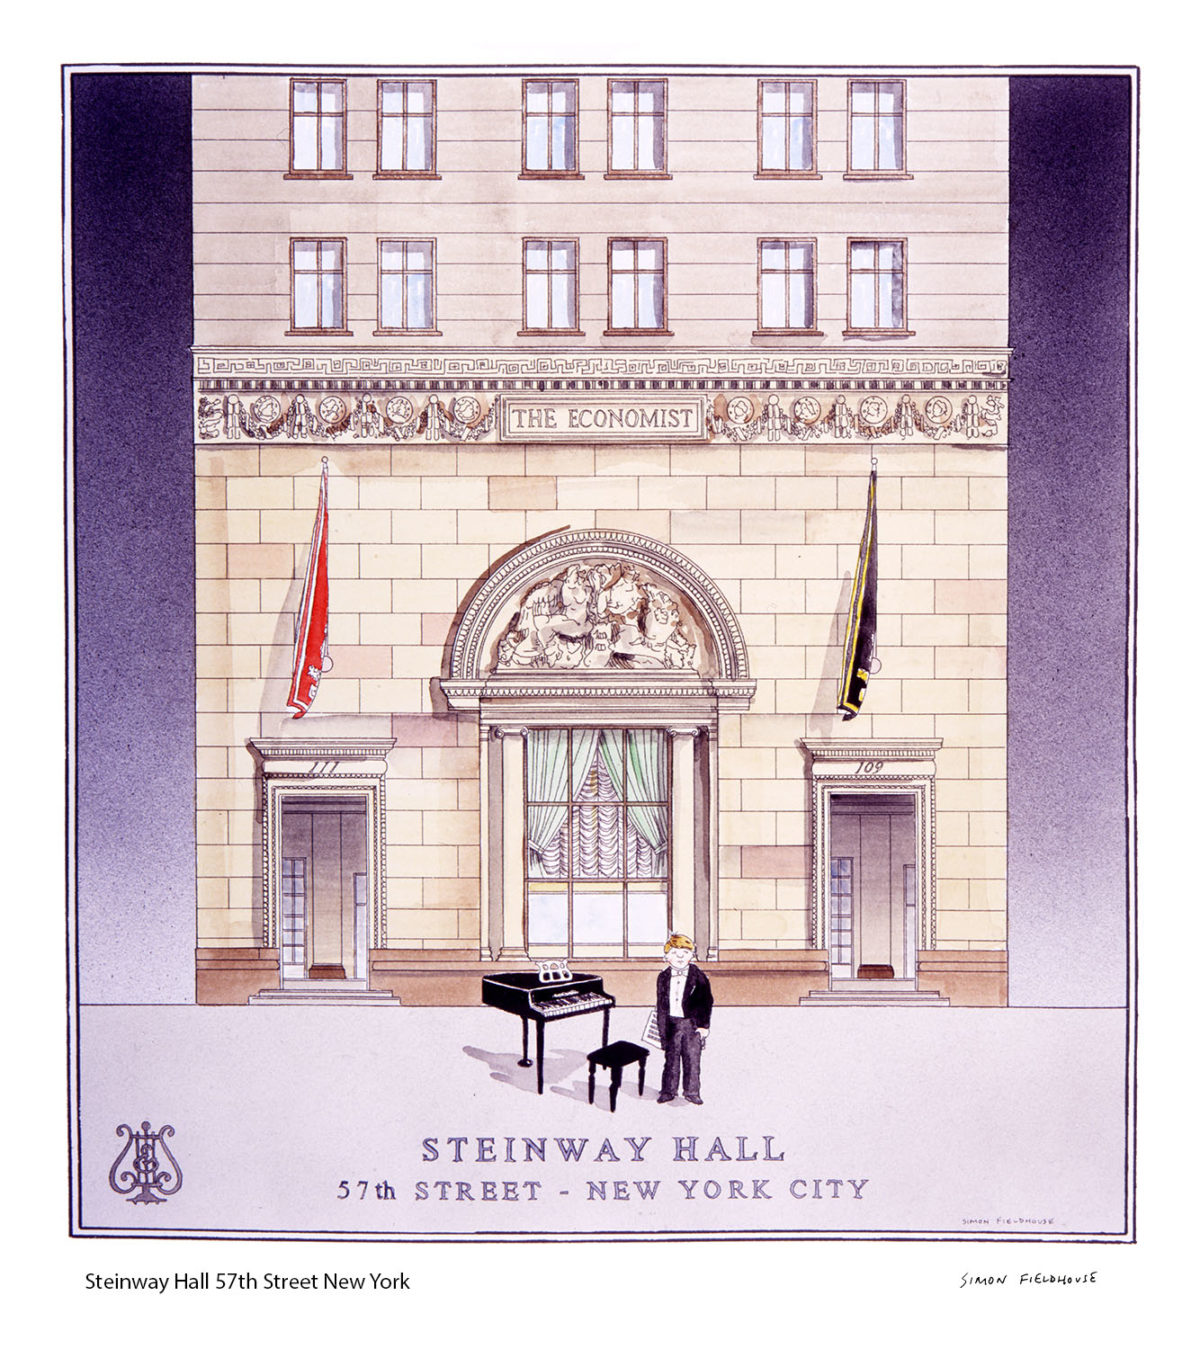 Steinway Hall 57th Street New York